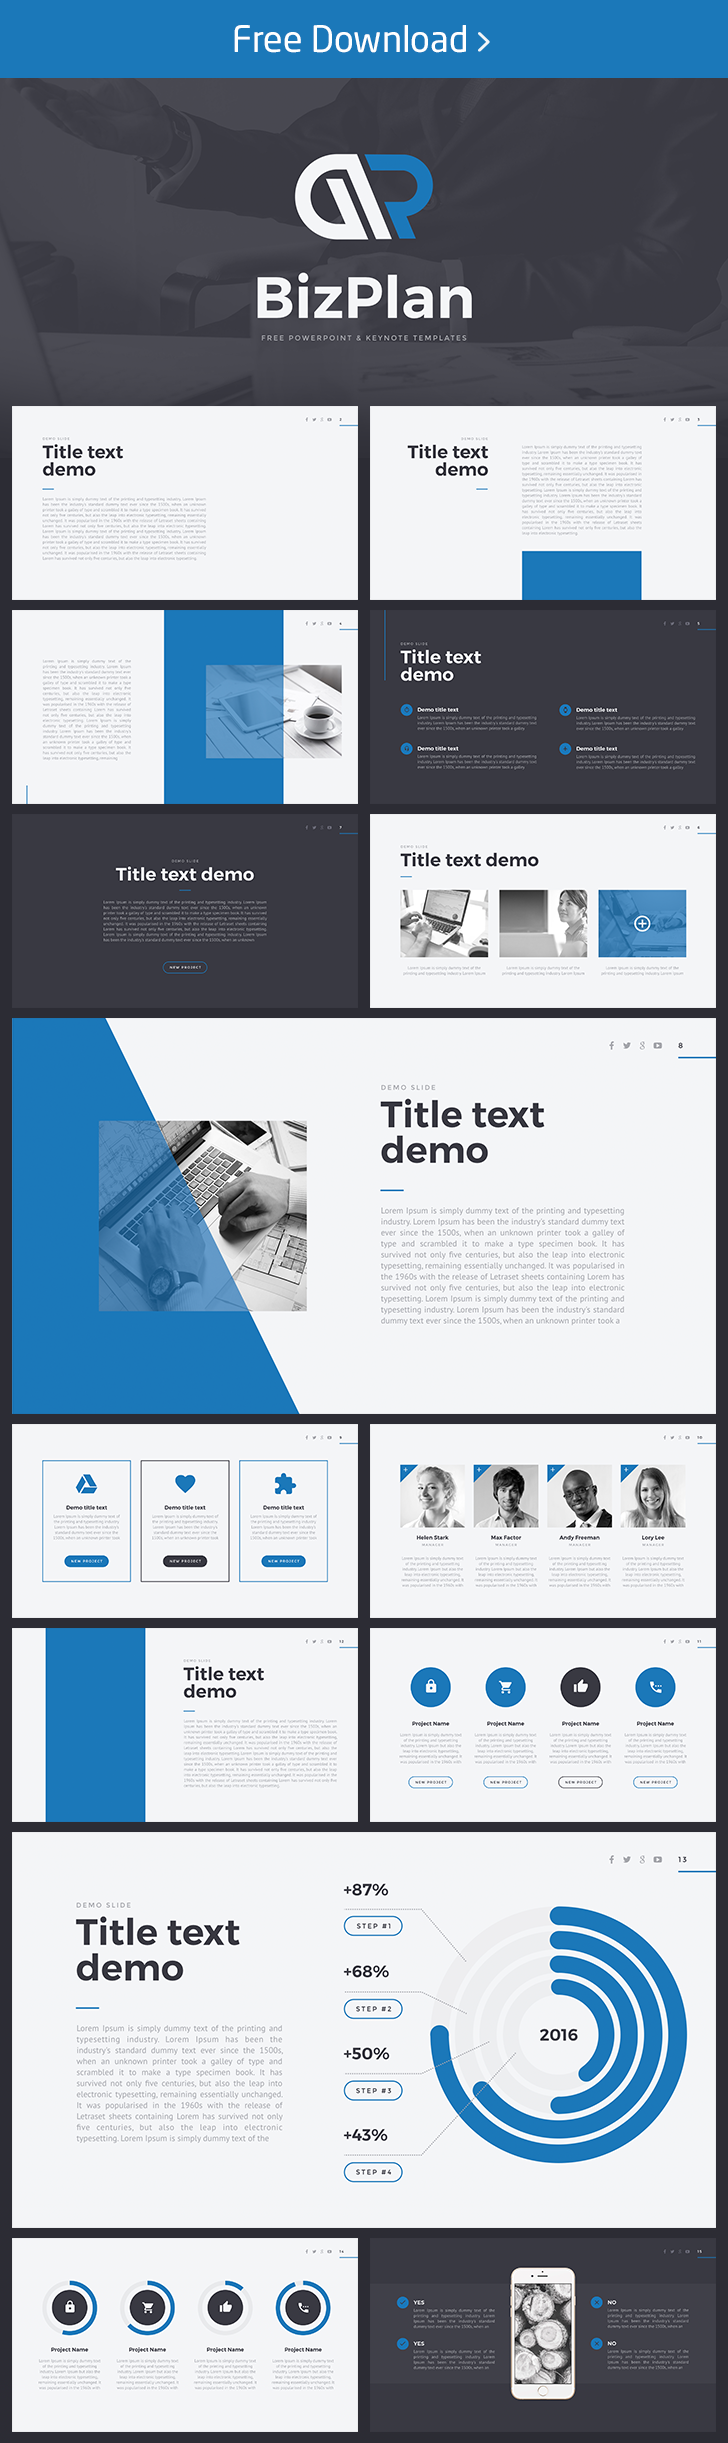 Free keynote template download httpshislideproductbiz plan free keynote template download httpshislideproductbiz plan blue free keynote template free iwork slide keynote business startup wajeb Image collections